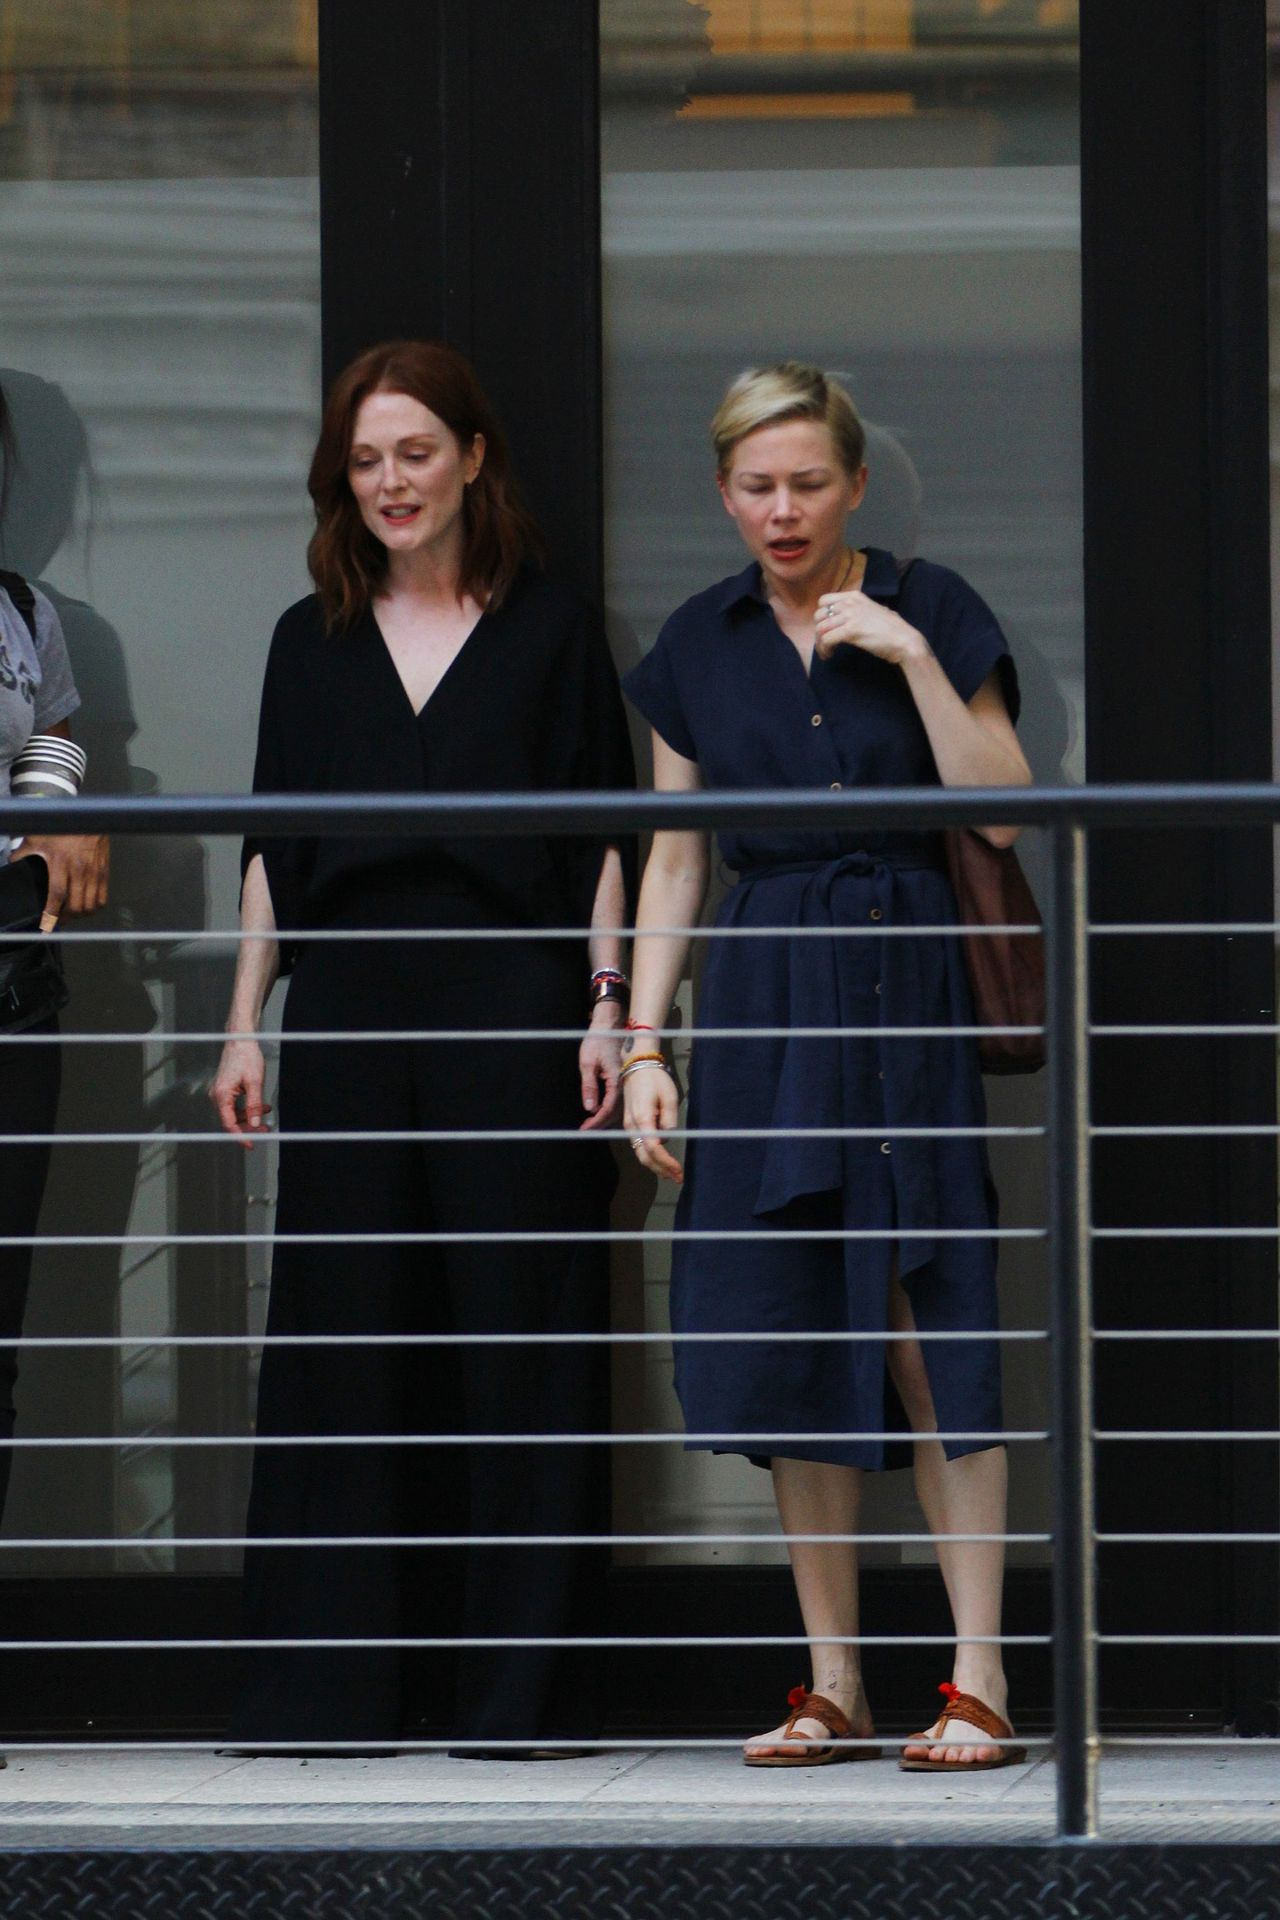 After The Wedding.Julianne Moore And Michelle Williams After The Wedding In Nyc 05